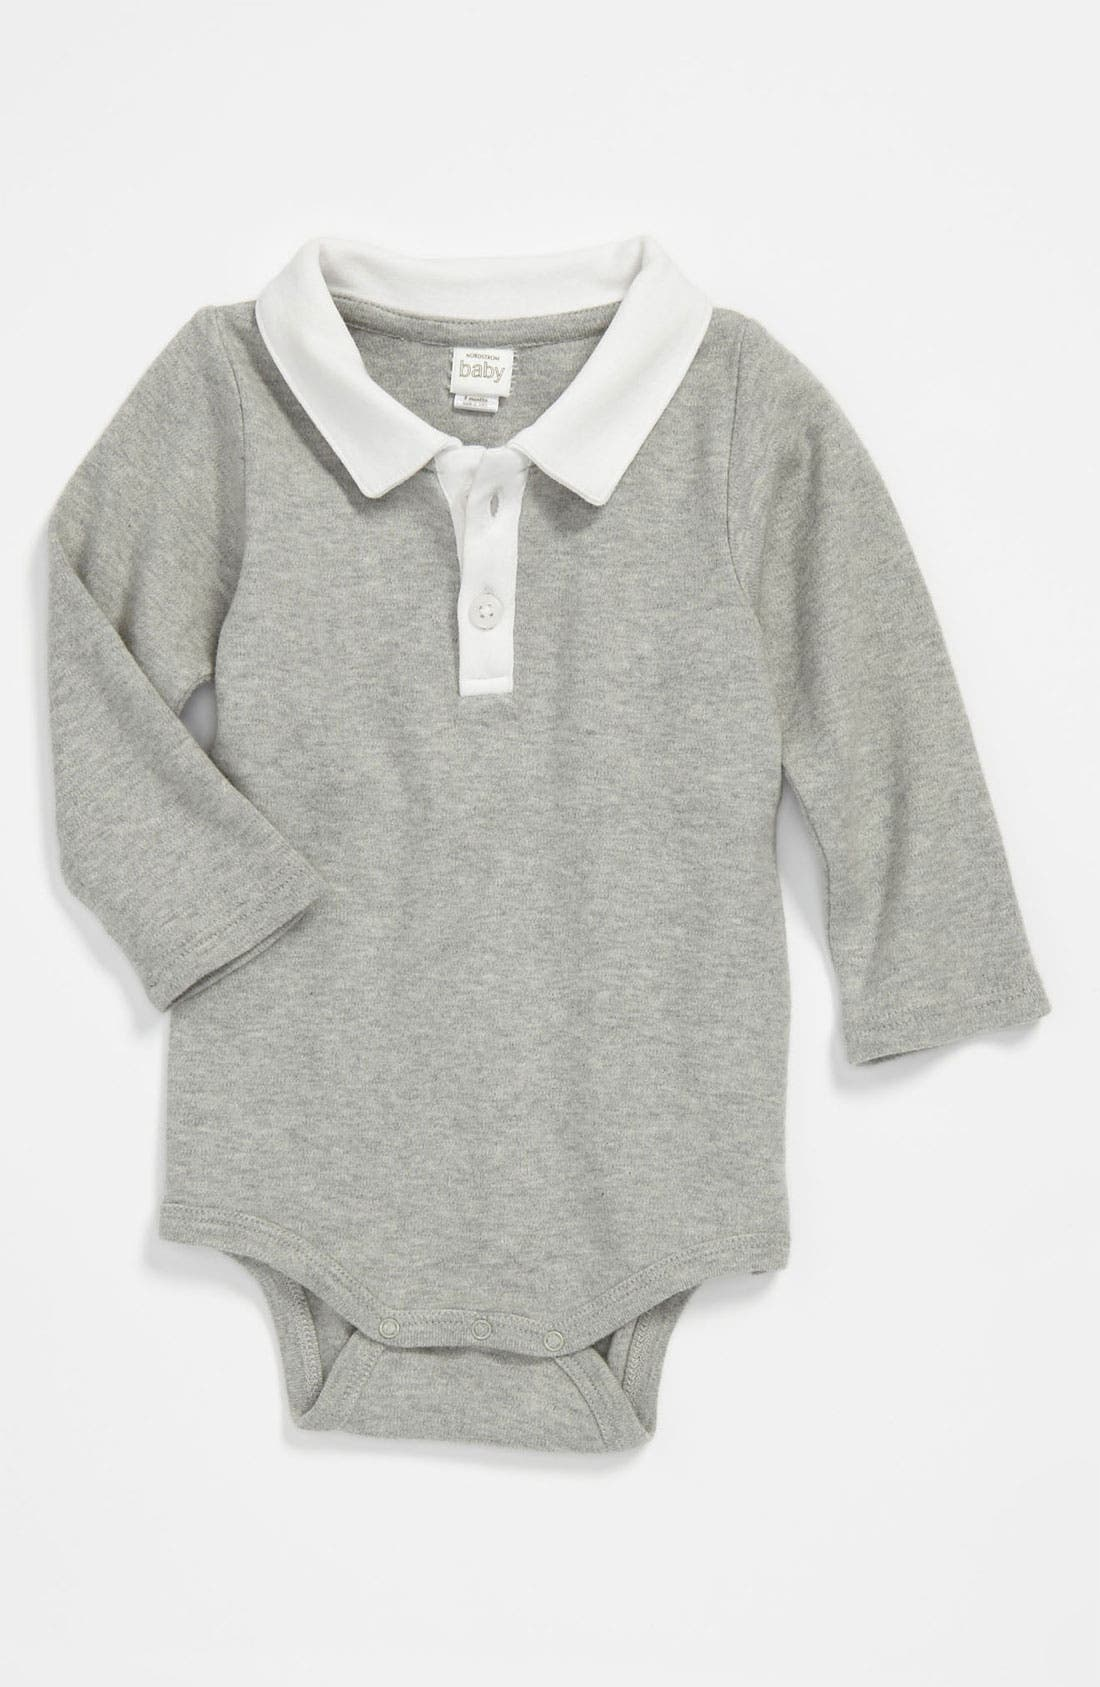 Alternate Image 1 Selected - Nordstrom Baby Polo Bodysuit (Infant)